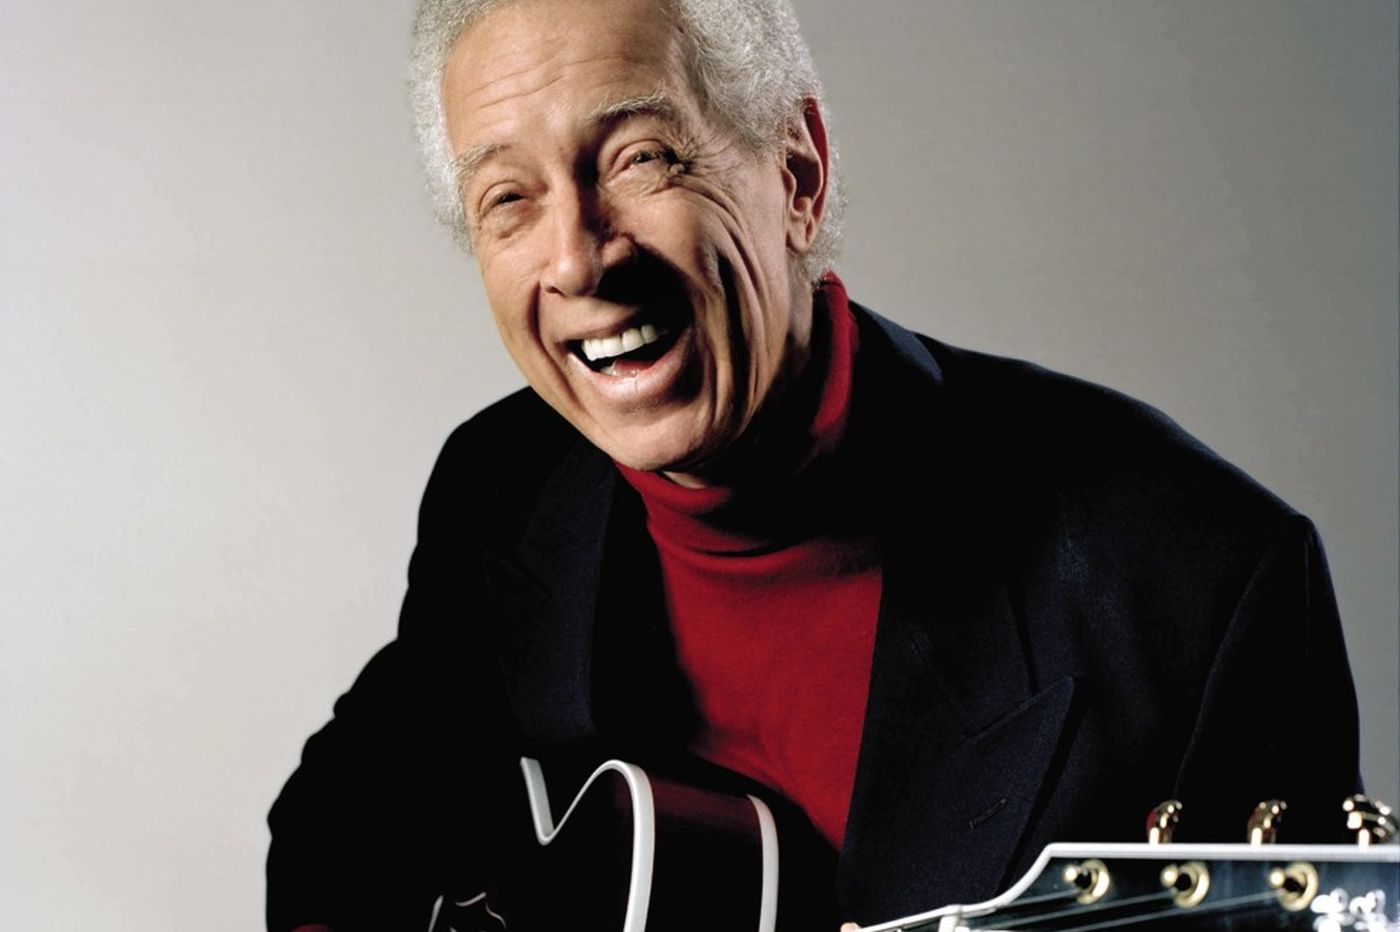 Kenny Burrell's journey from jazz legend to GoFundMe appeal